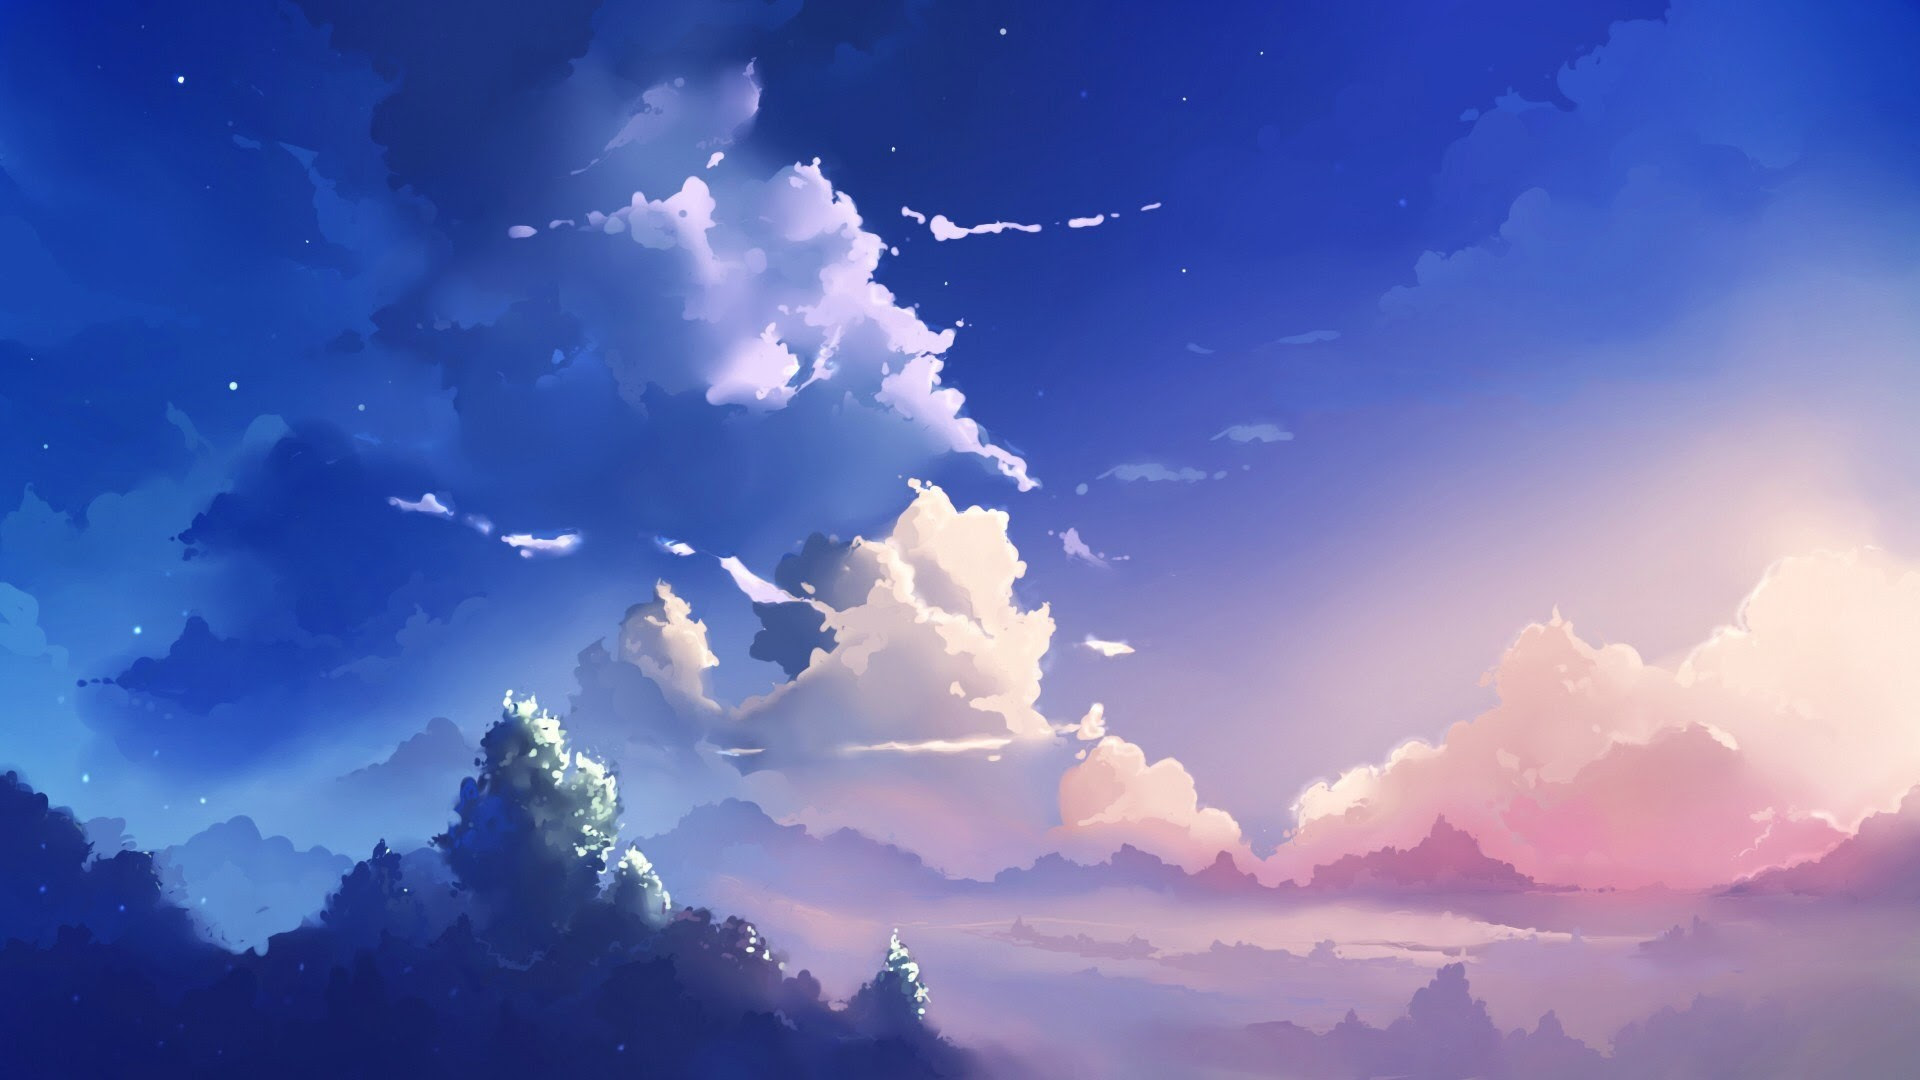 Beautiful Aesthetic Light Blue Anime Wallpaper Images